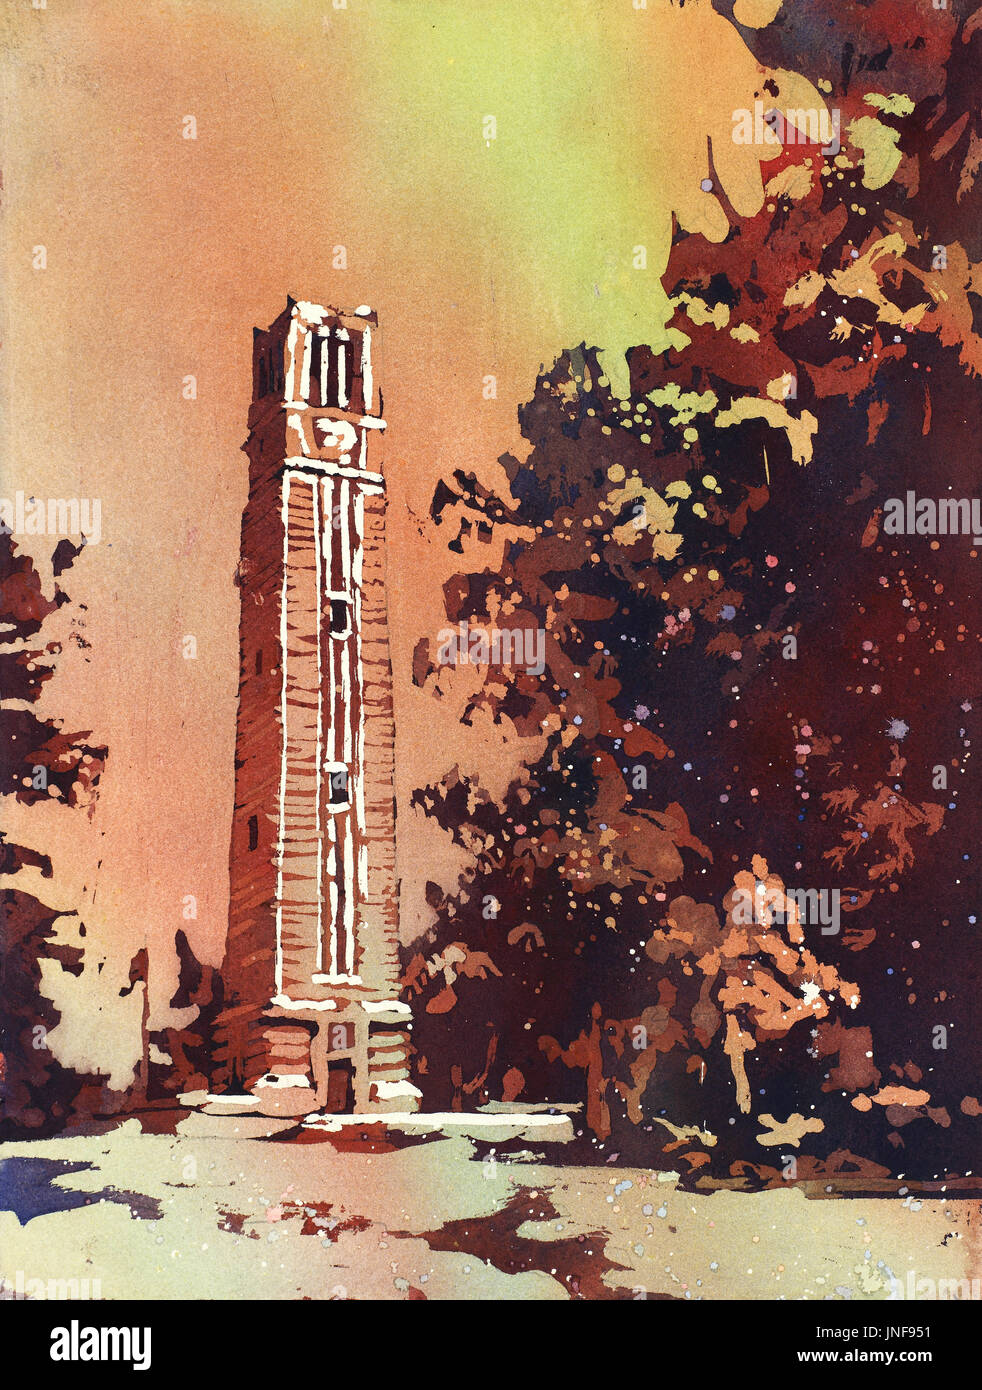 Watercolor painting of the North Carolina Statue University Bell-Tower in Raleigh, NC at dusk.  NCSU Bell-Tower at sunset in the city of Raleigh Stock Photo